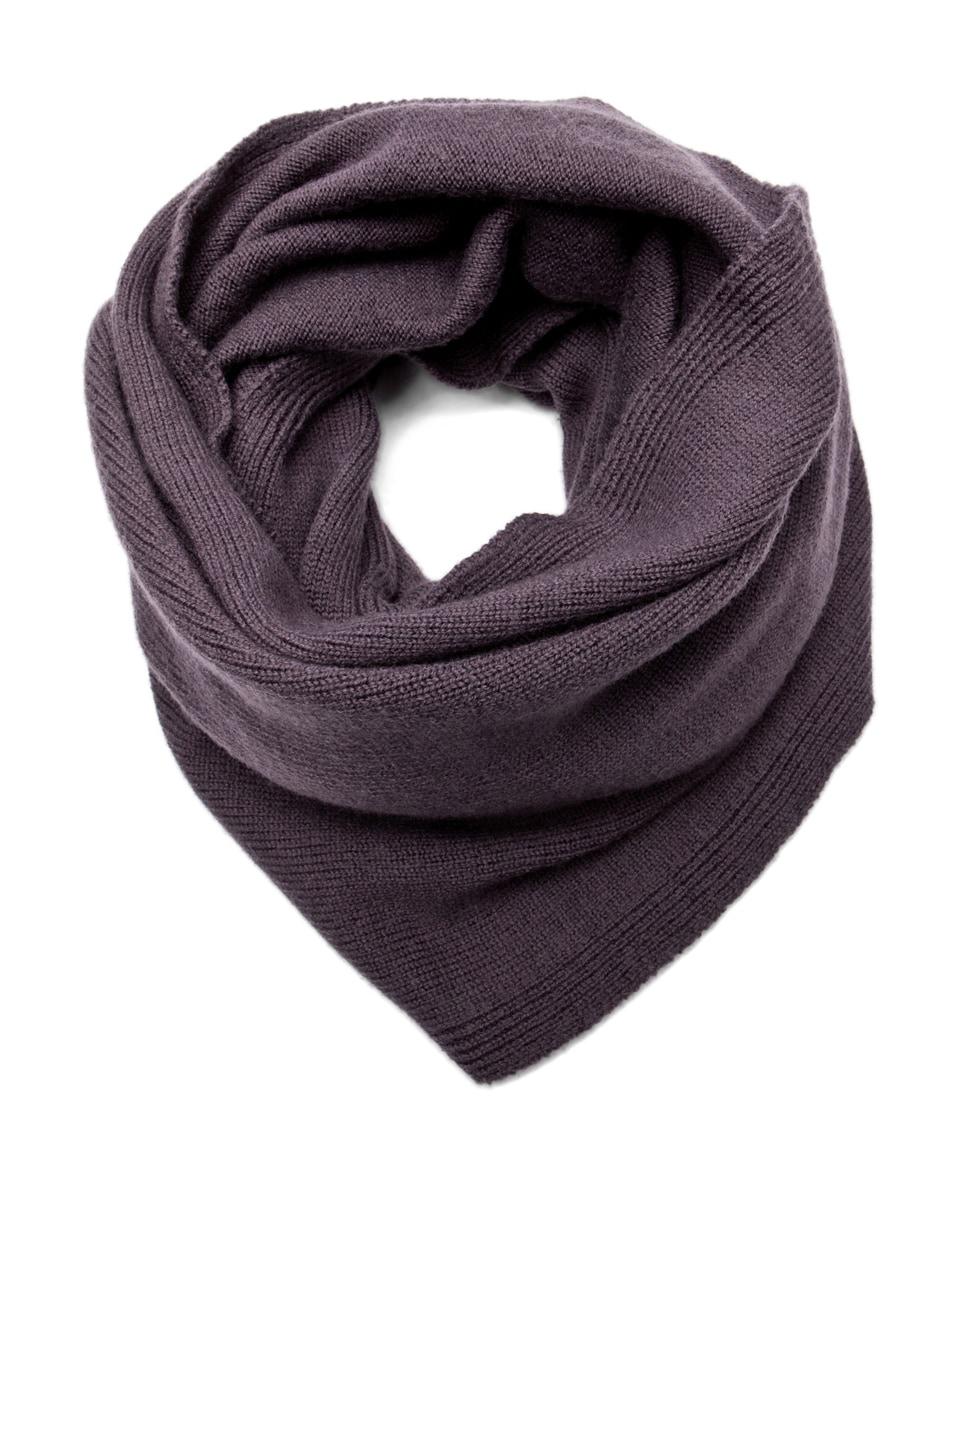 Image 1 of SILENT DAMIR DOMA Scarf in Heather Plum